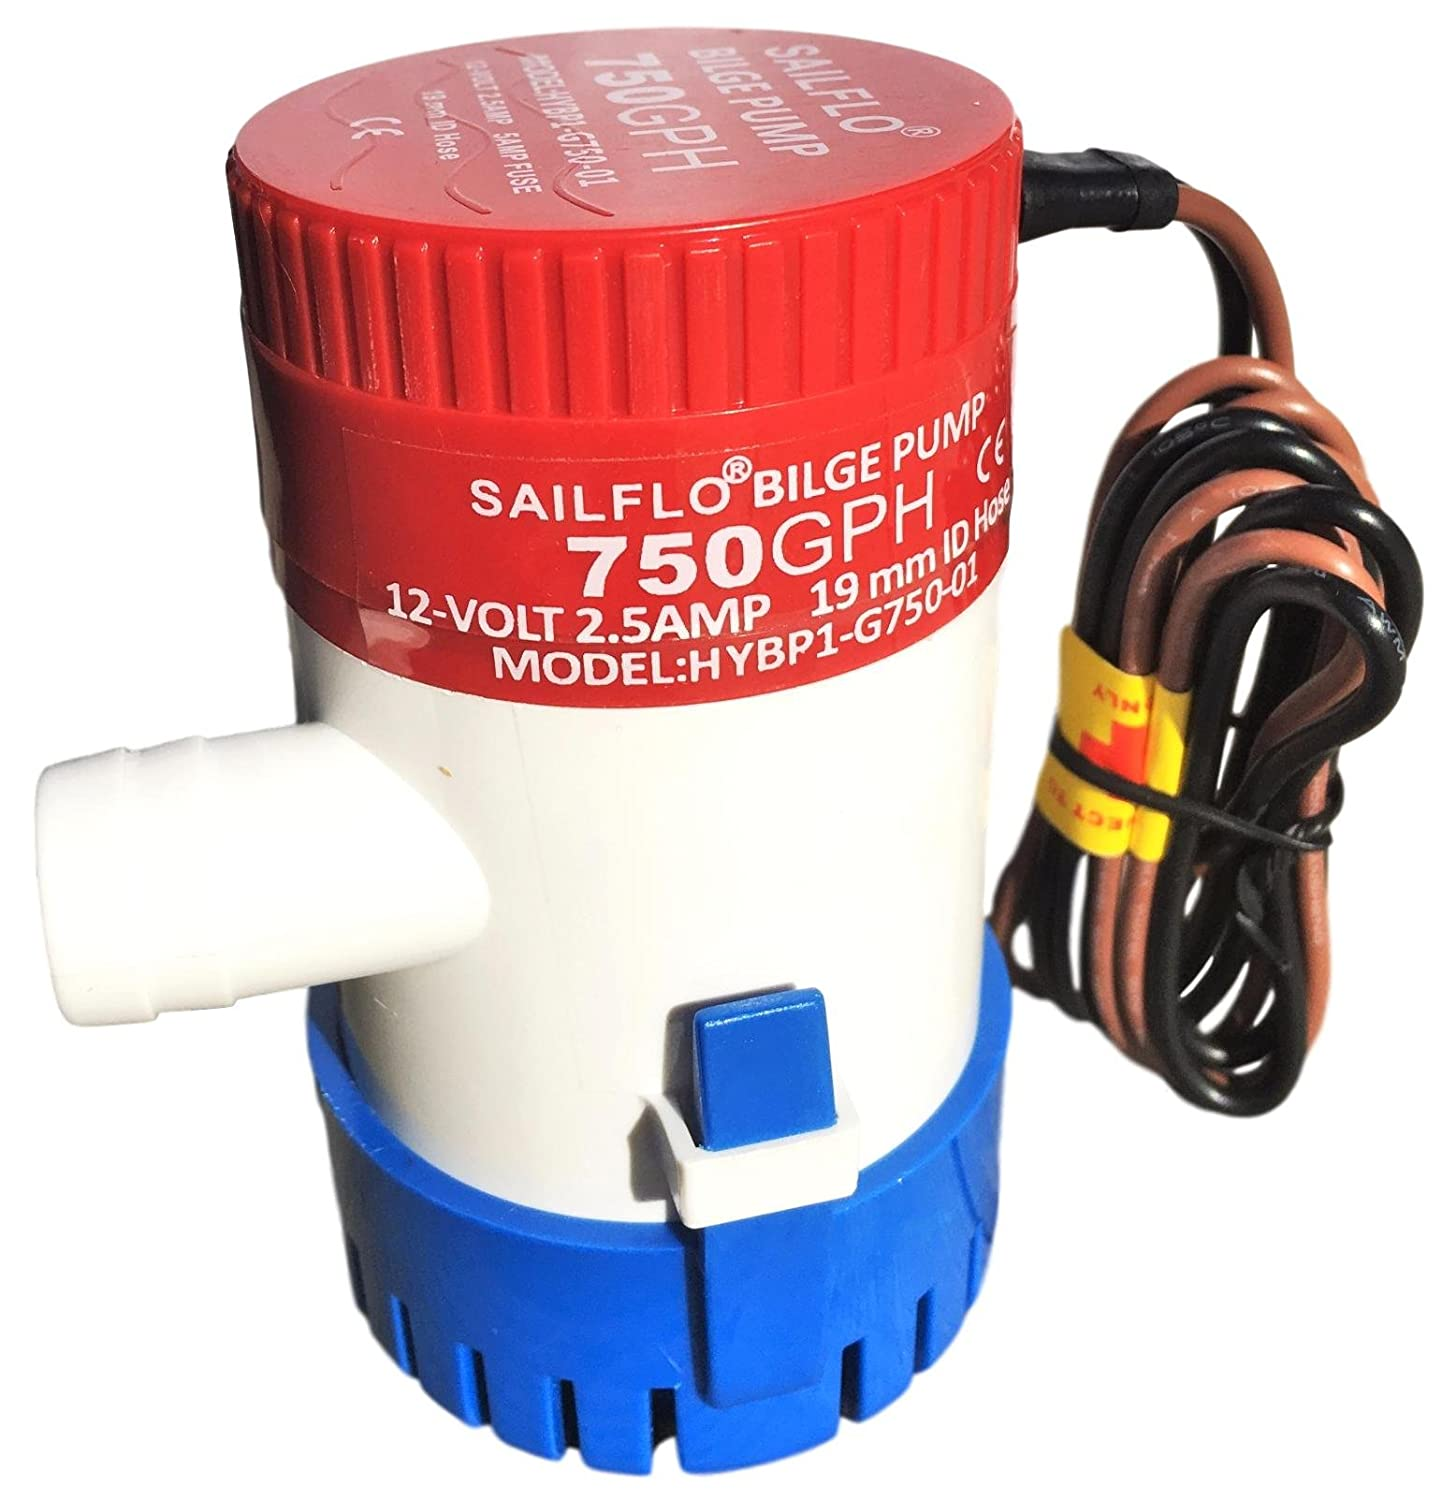 Amazon.com : SAILFLO Boat Bilge Water Pump Marine 750 GPH 12V 3/4 inch hose  outlet : Sports & Outdoors